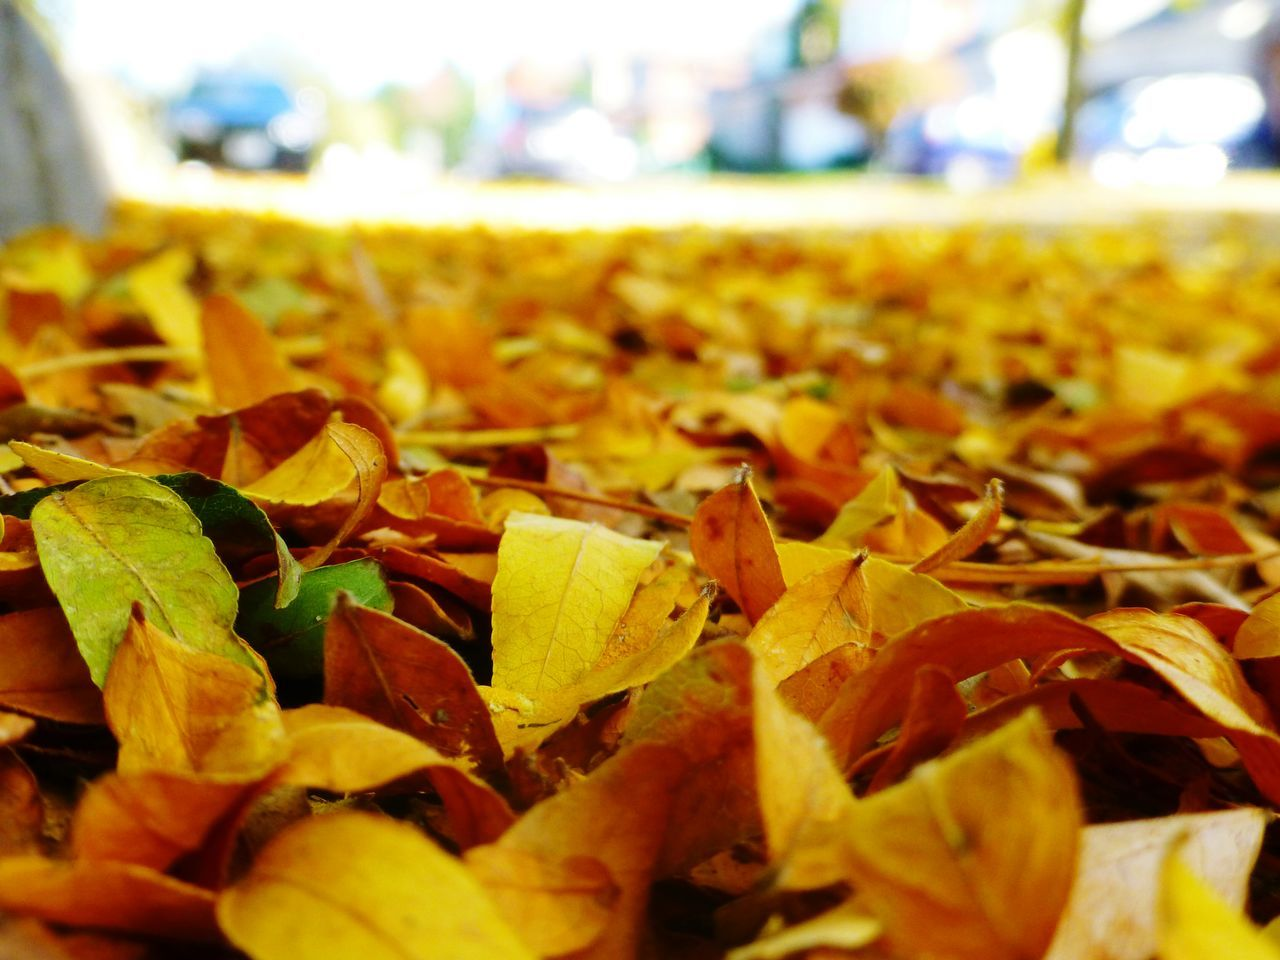 leaf, autumn, change, close-up, dry, nature, no people, day, beauty in nature, fragility, outdoors, yellow, growth, freshness, maple